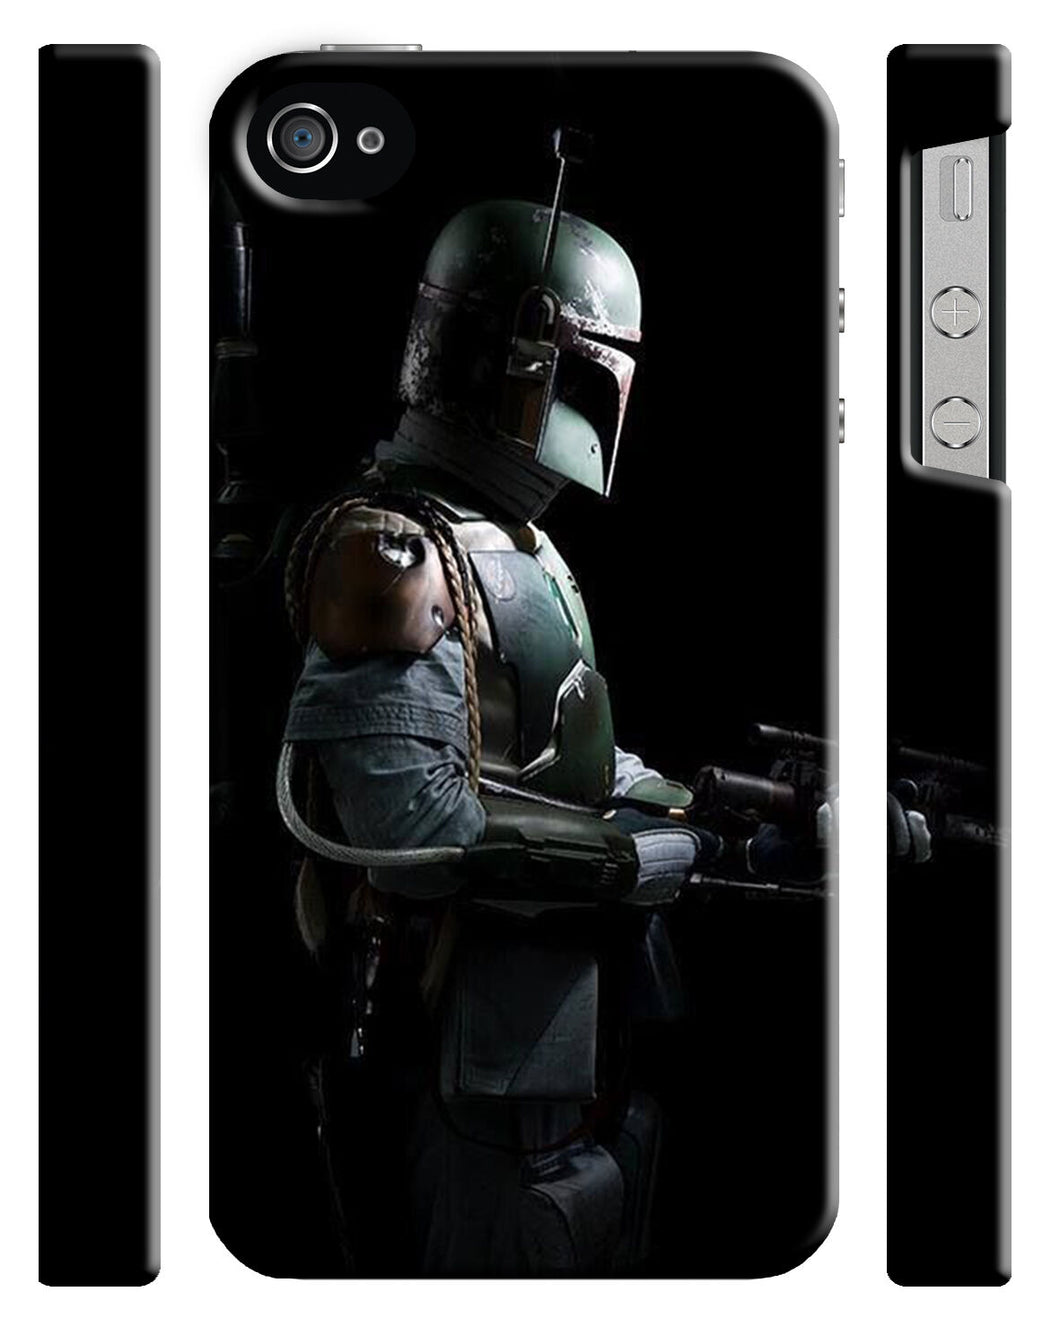 Star Wars Boba Fett Mandalorian Iphone 4 4s 5 5s 5c 6 6S + Plus Case Cover 146